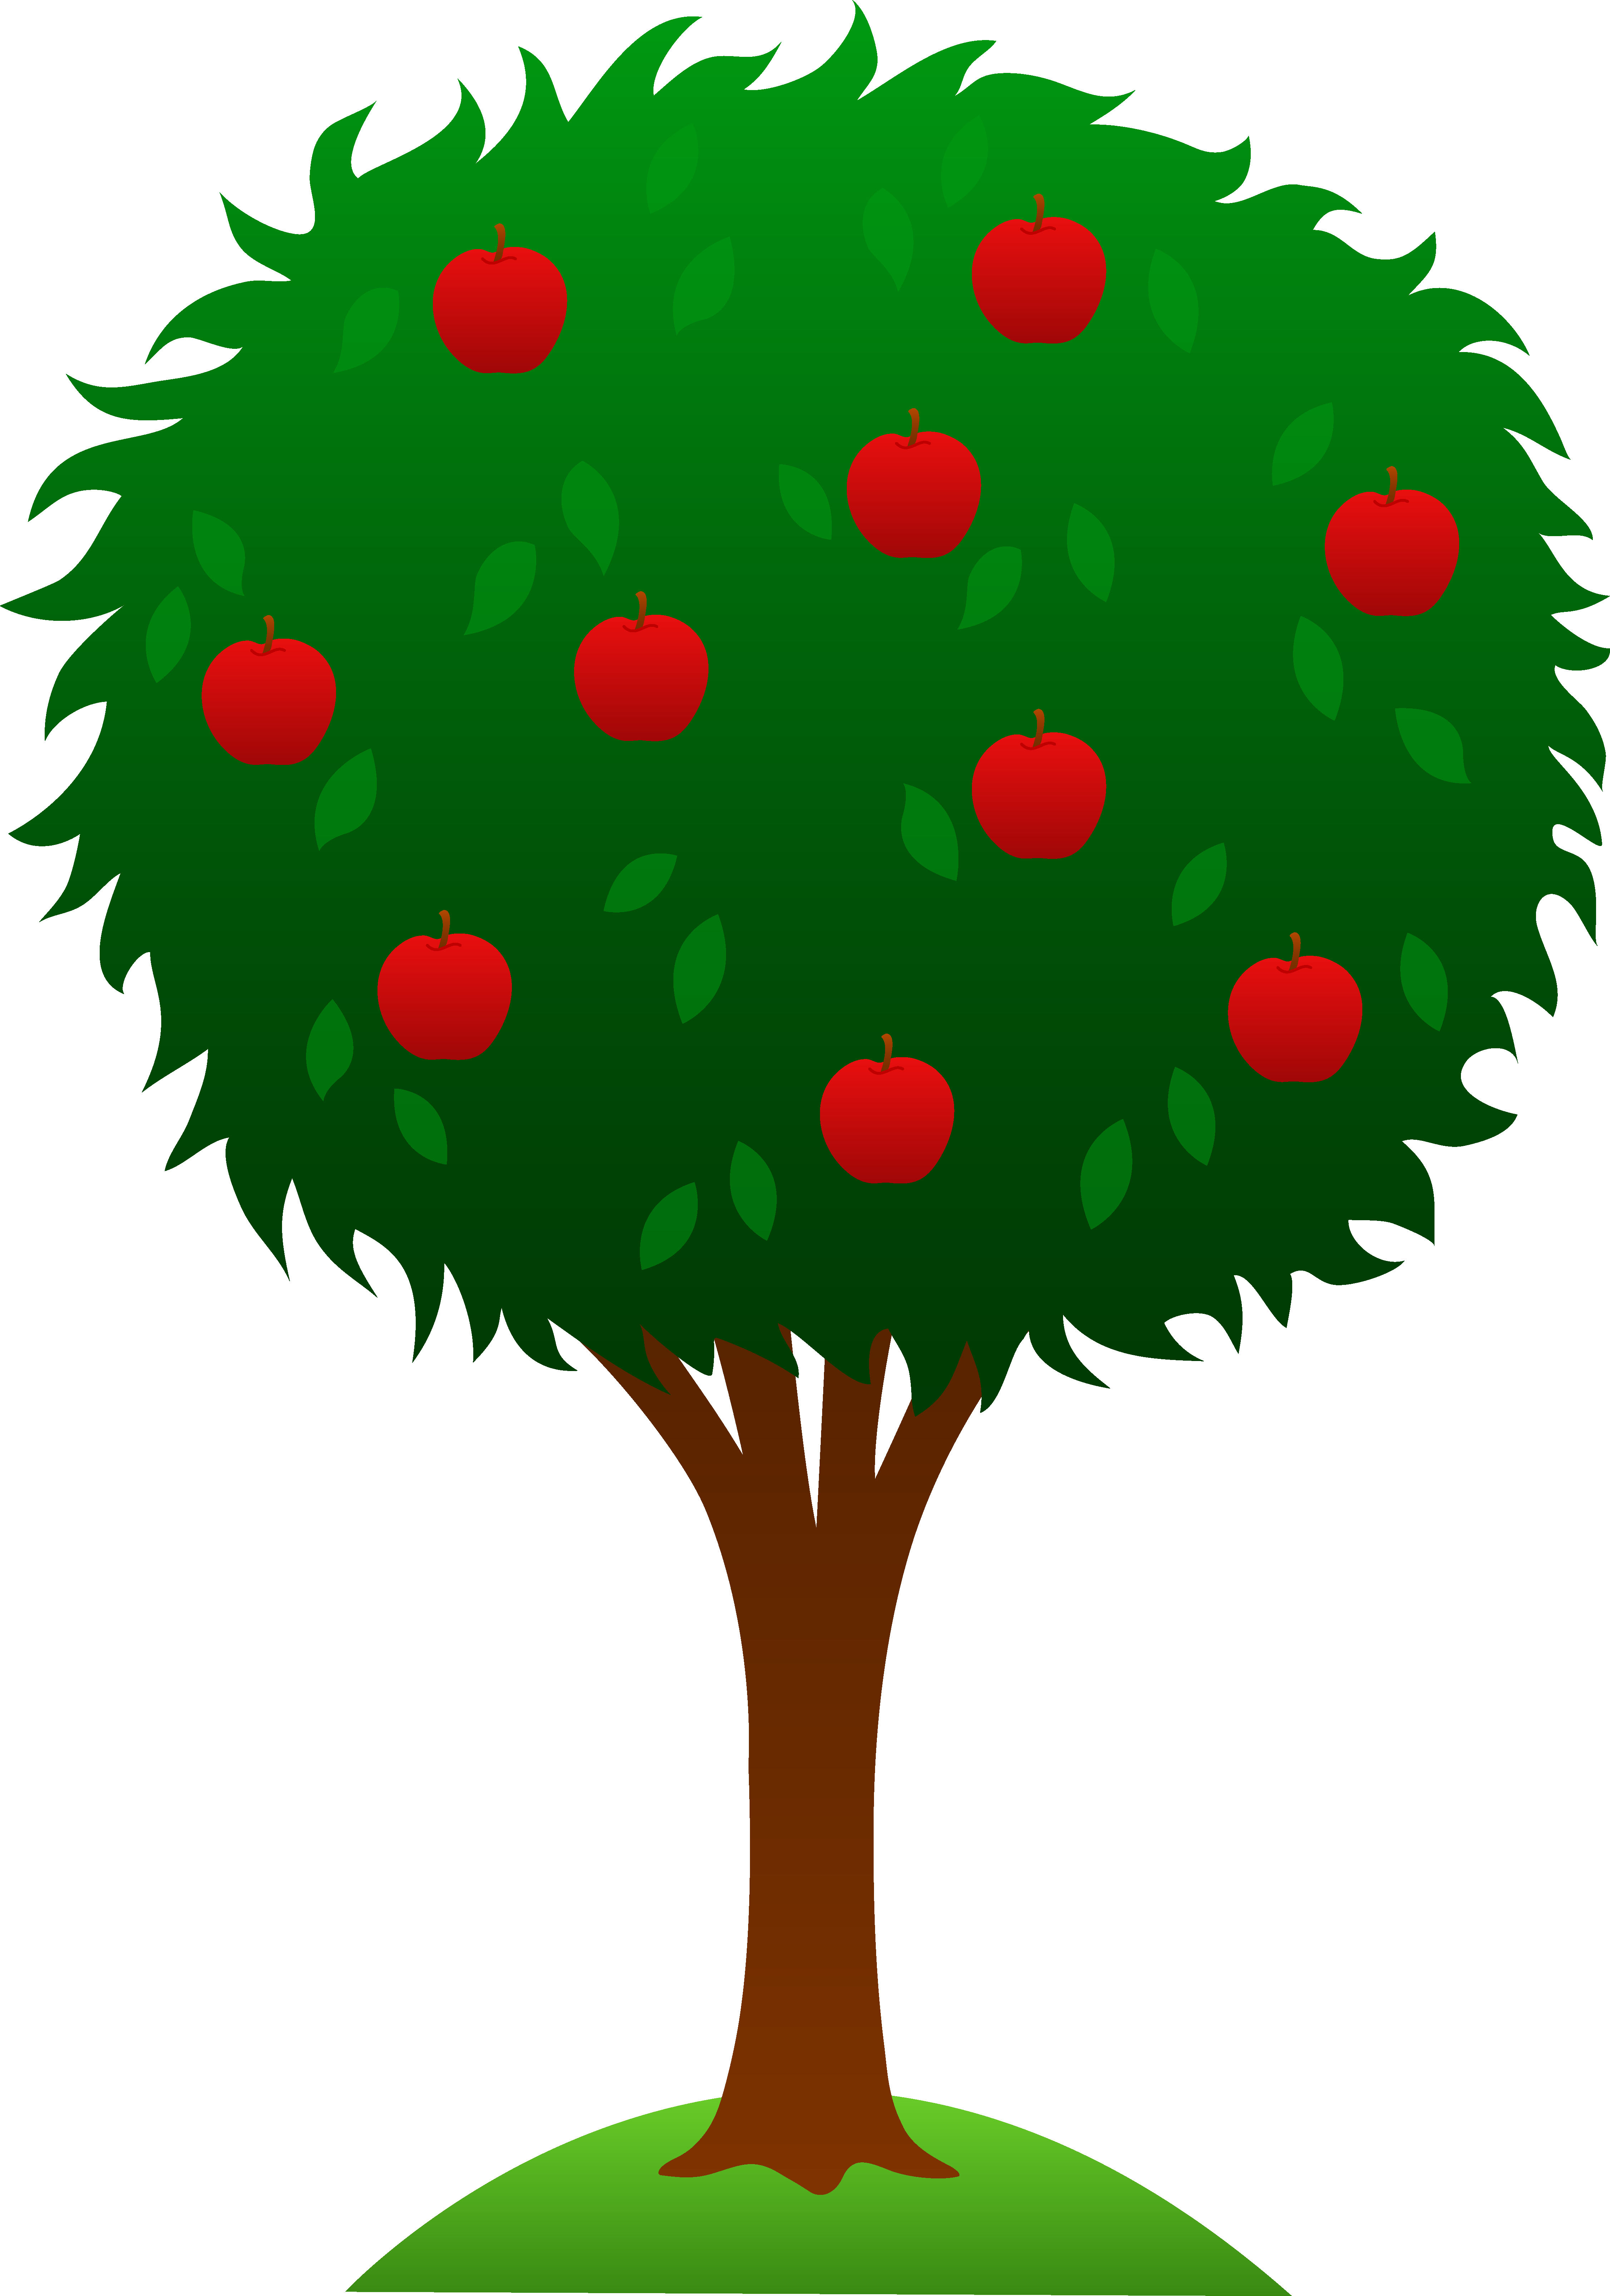 orange tree clipart-orange tree clipart-4